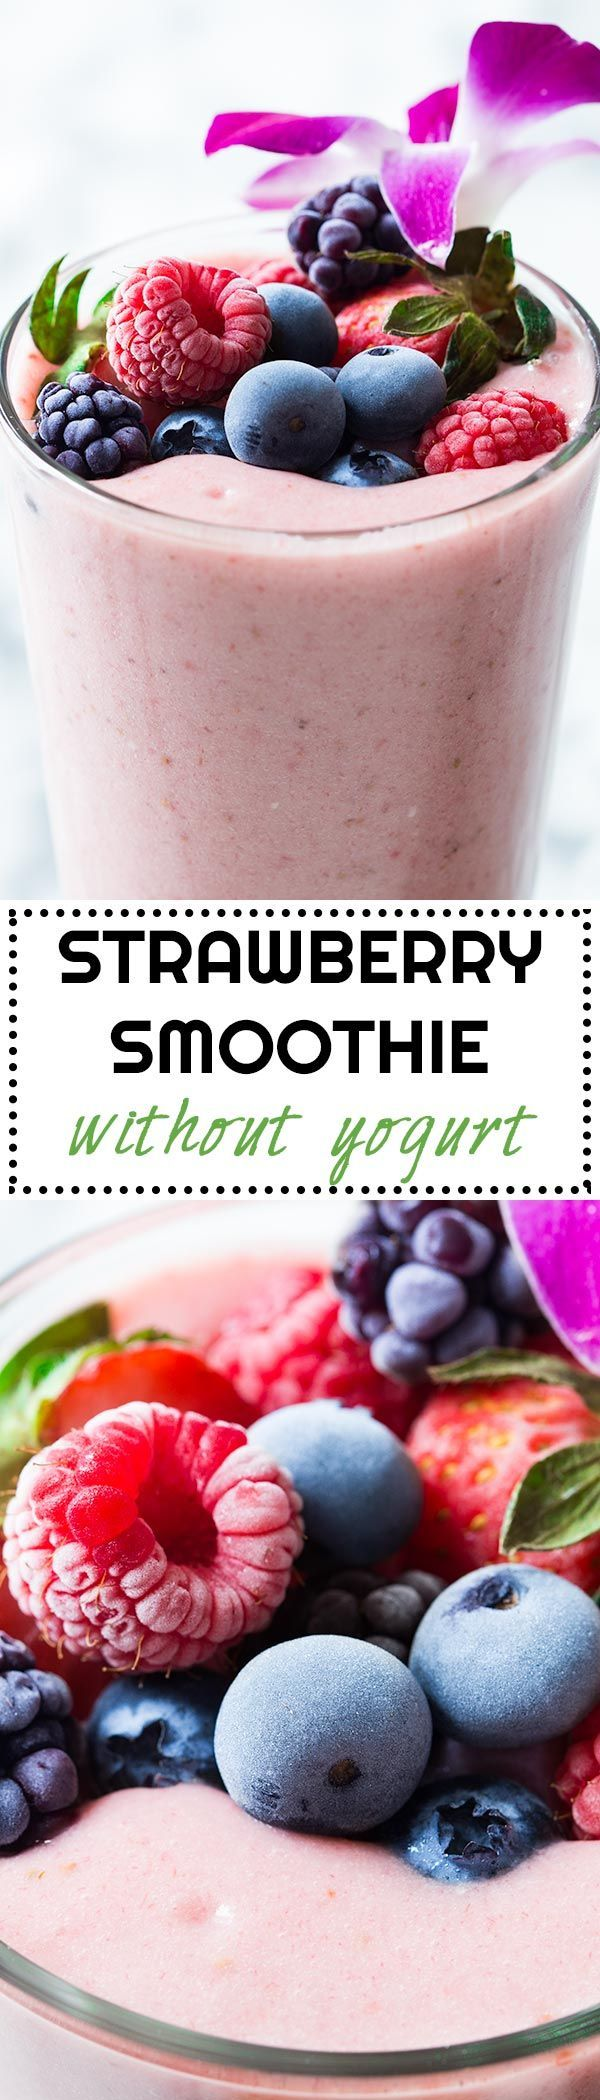 Strawberry Smoothie Without Yogurt via @greenhealthycoo